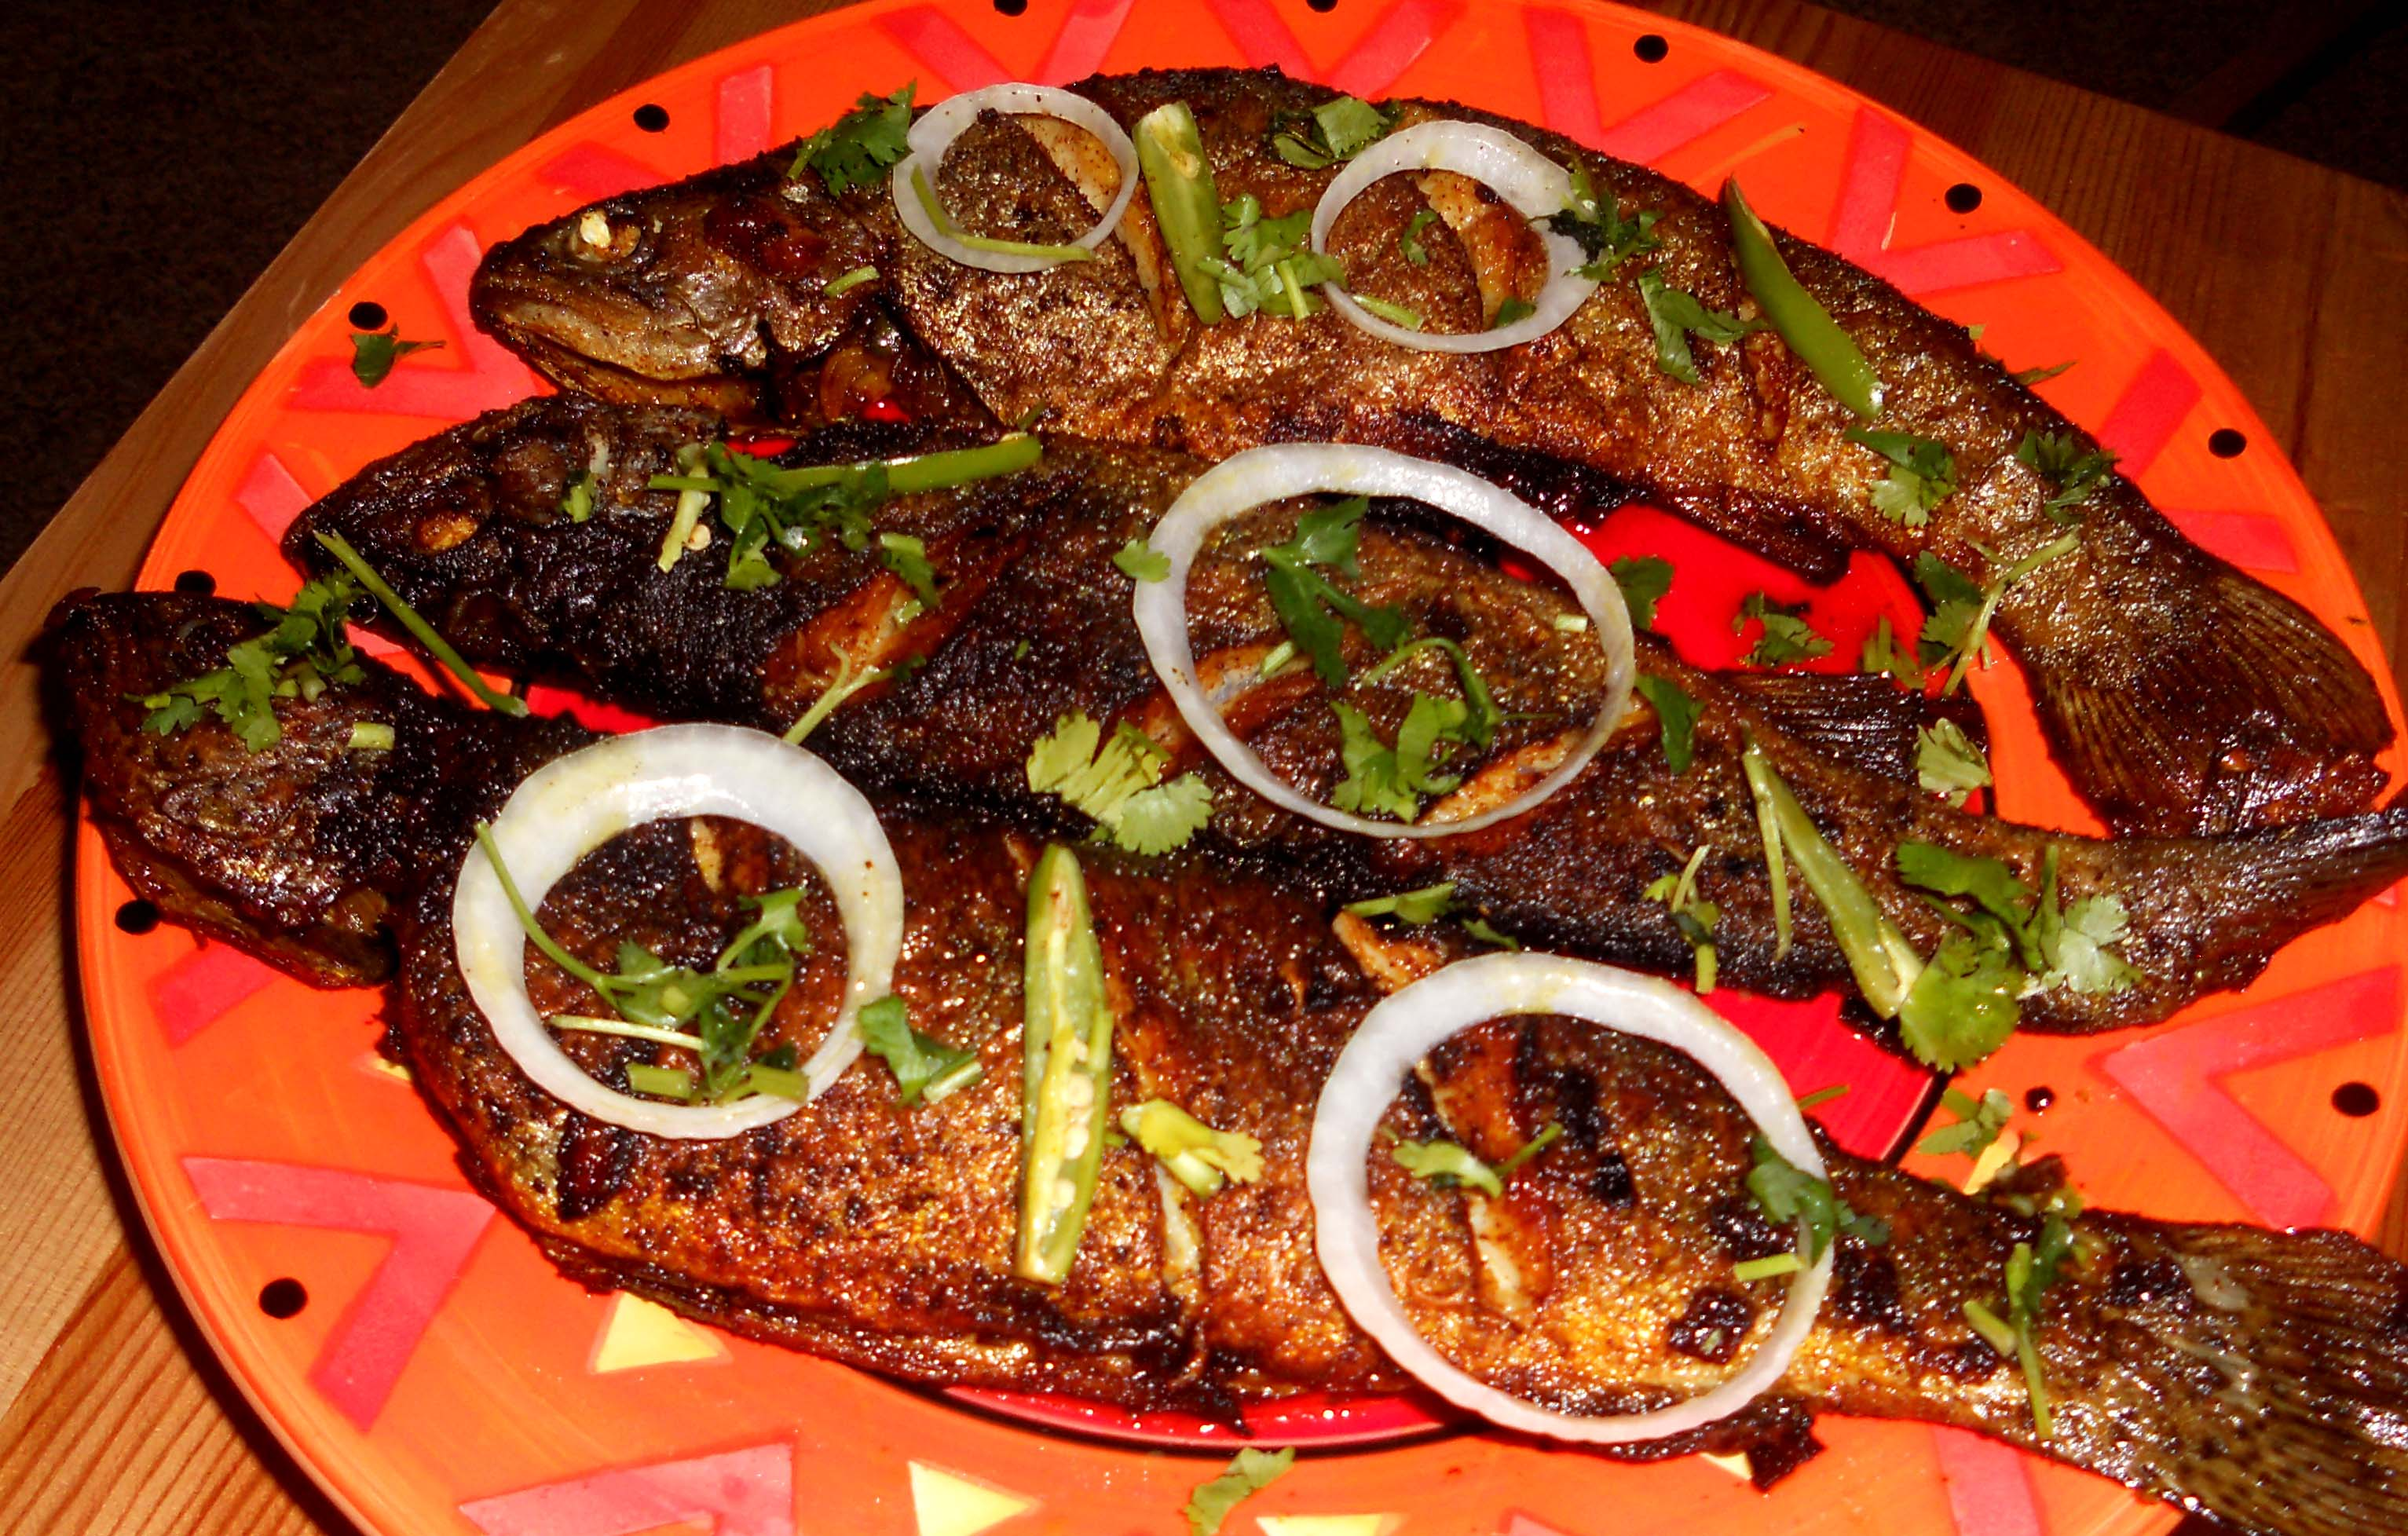 Fried trout - a delicious source of omega-3 fatty acids 4